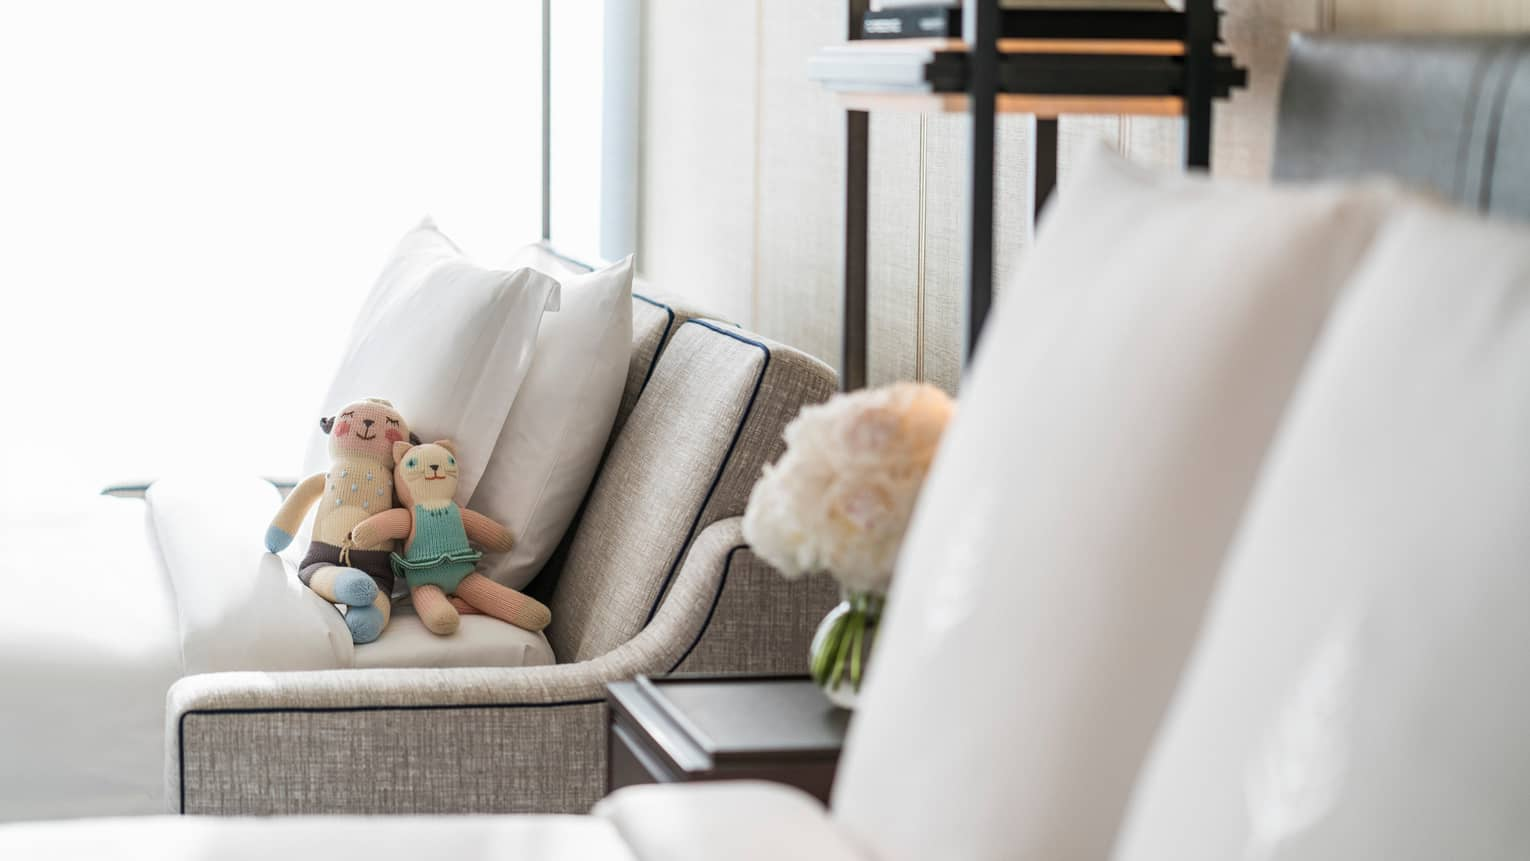 Two small stuffed toys rest against pillows on pull-out sofa beside hotel bed